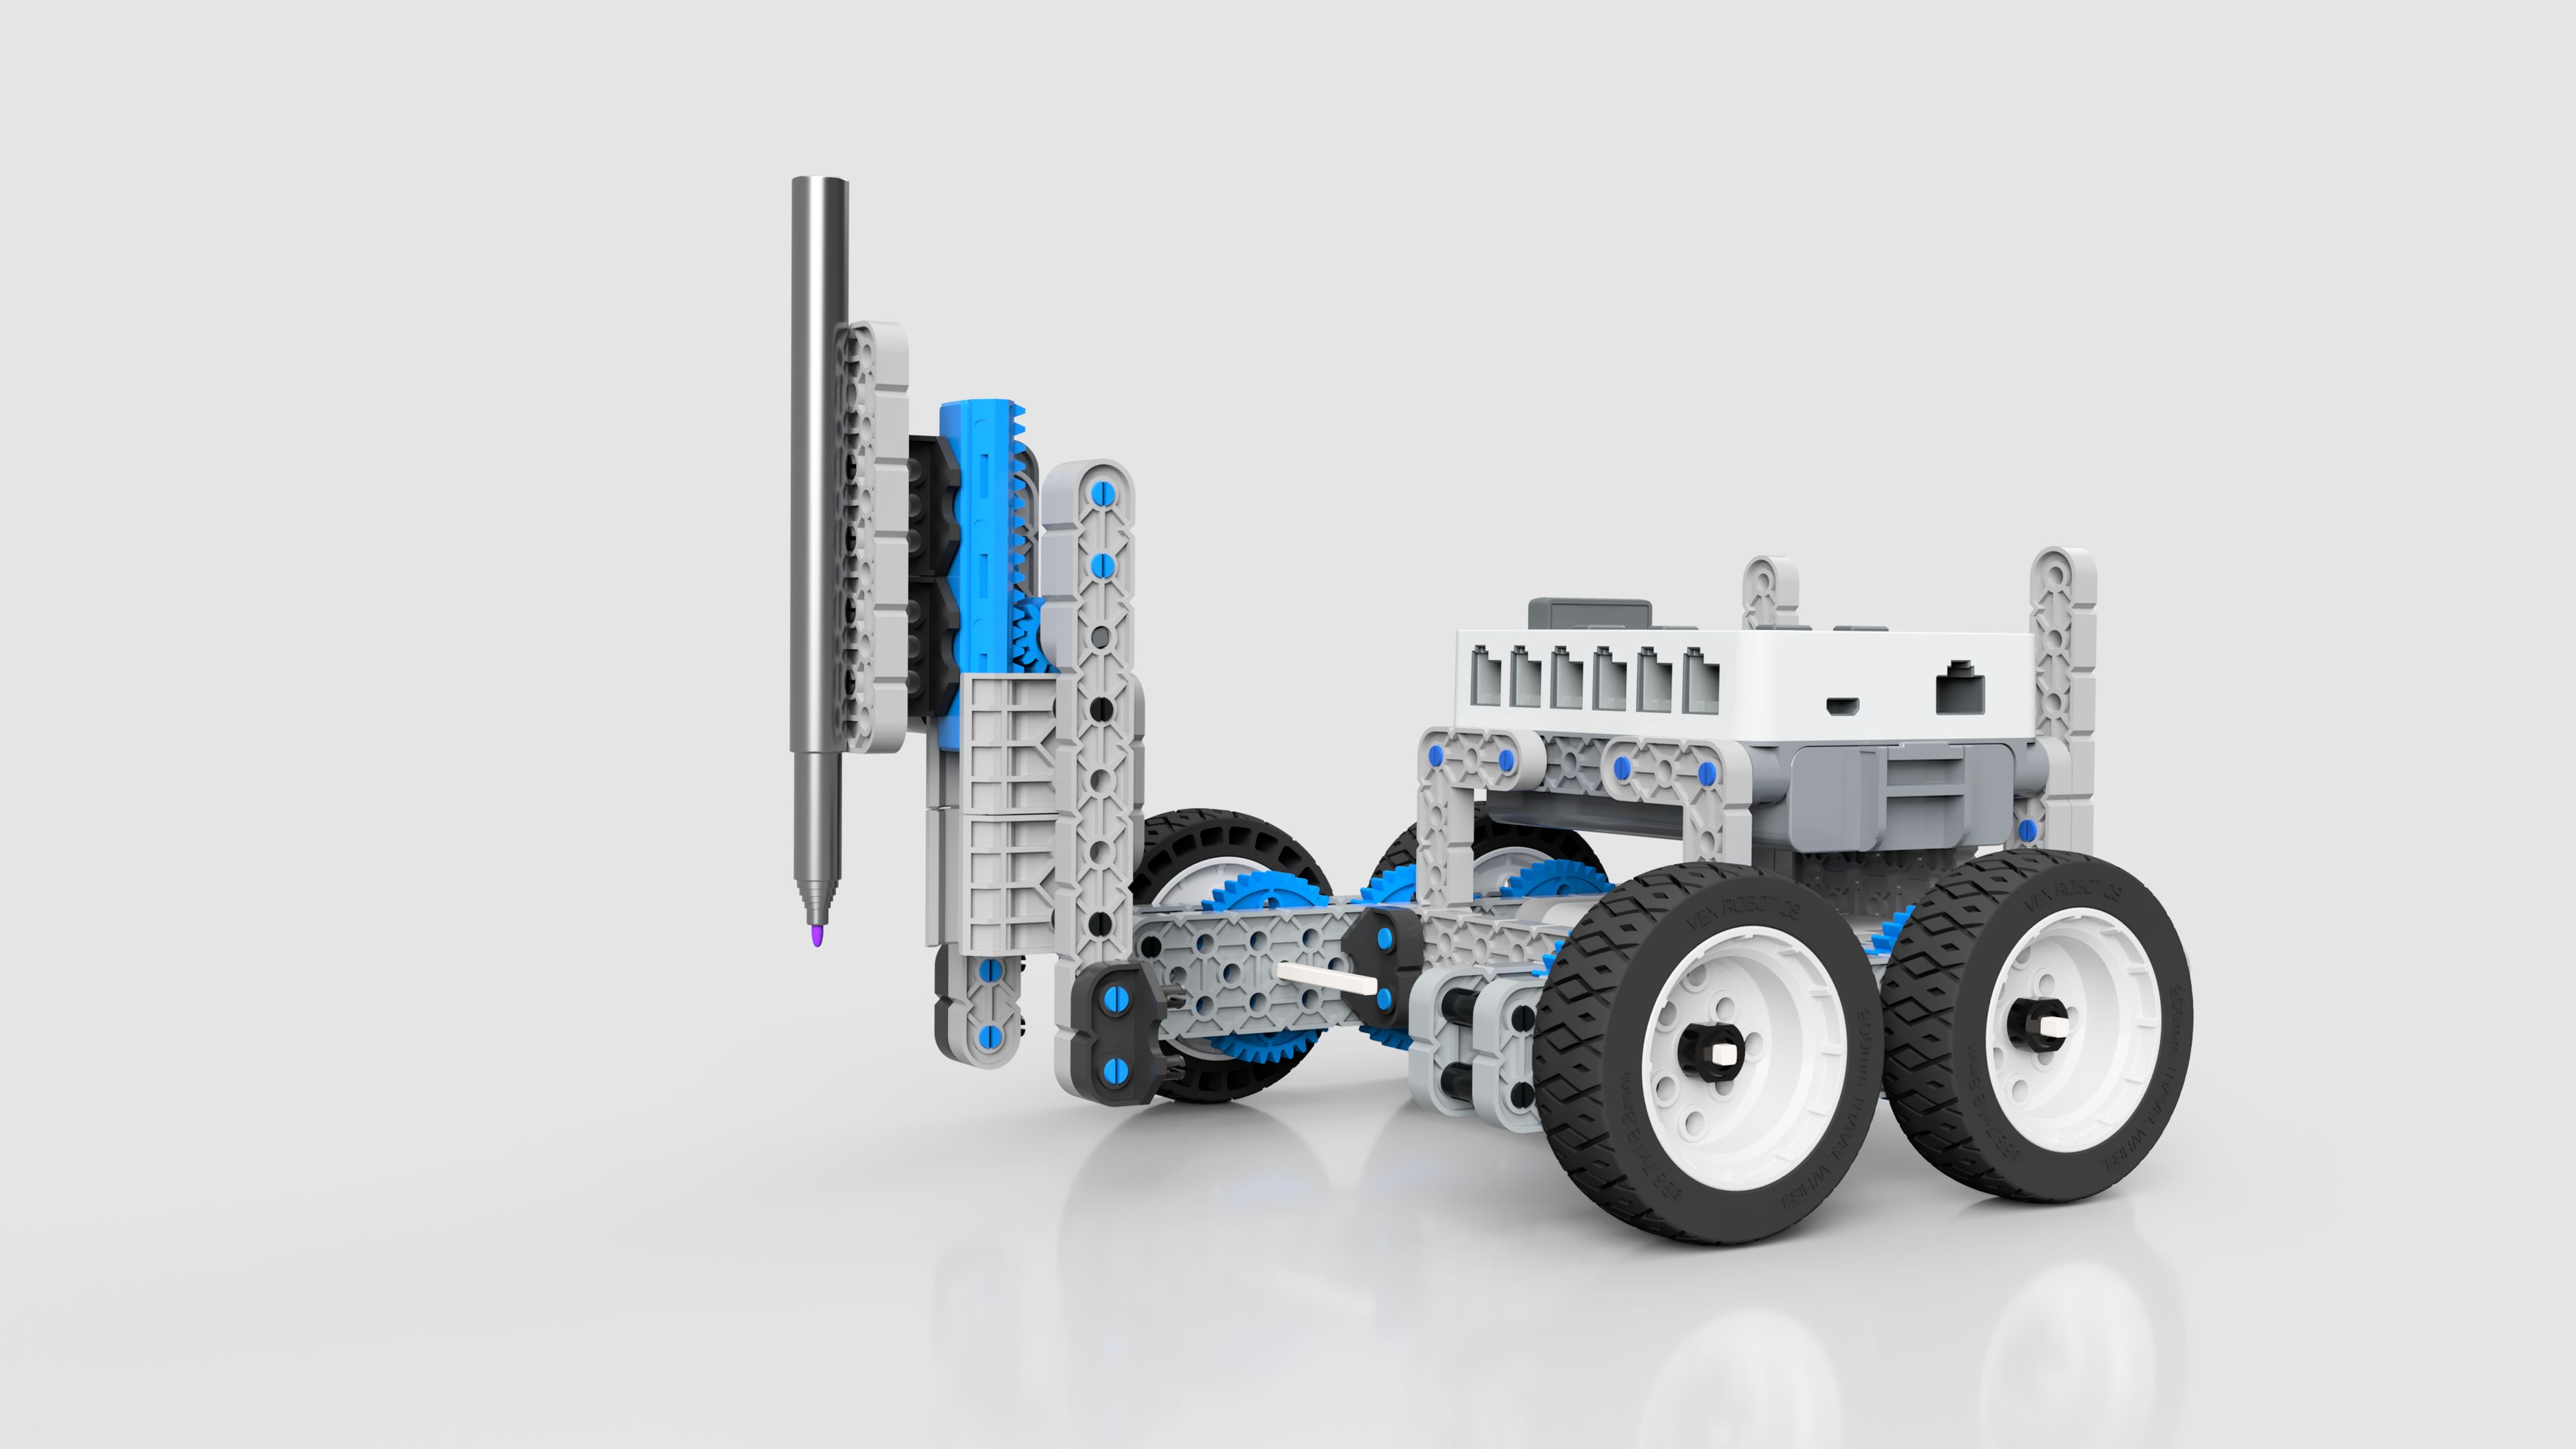 Vex-iq-robot-caneta-2020-may-21-06-39-32pm-000-customizedview2245815408-png-3500-3500